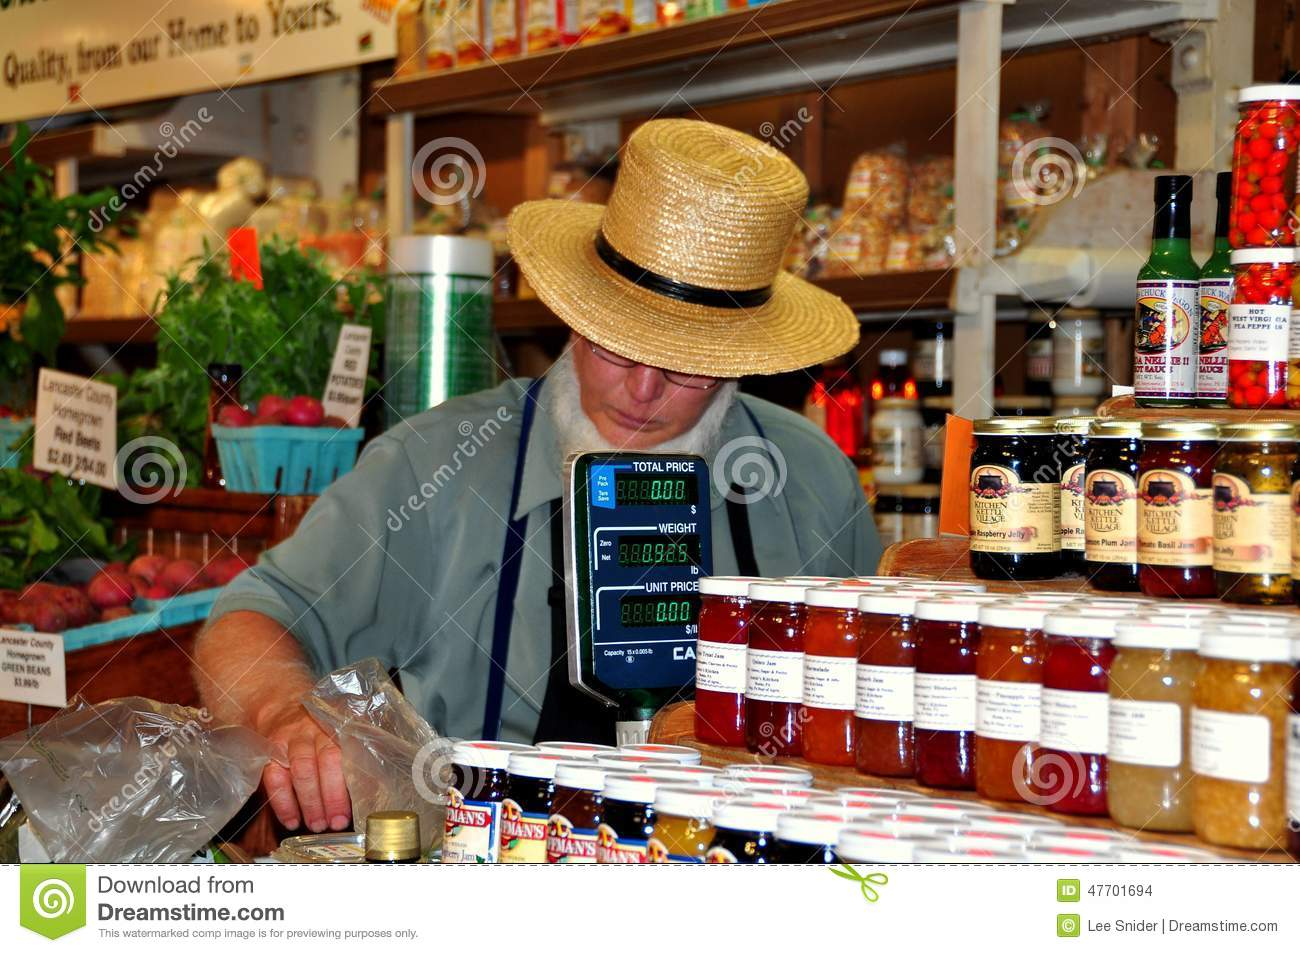 f99b6dea PHILADELPHIA, PENNSYLVANIA: Amish man with white beard and straw hat  selling top quality foods at Kaufman's Farm Products booth in the Reading  Terminal ...